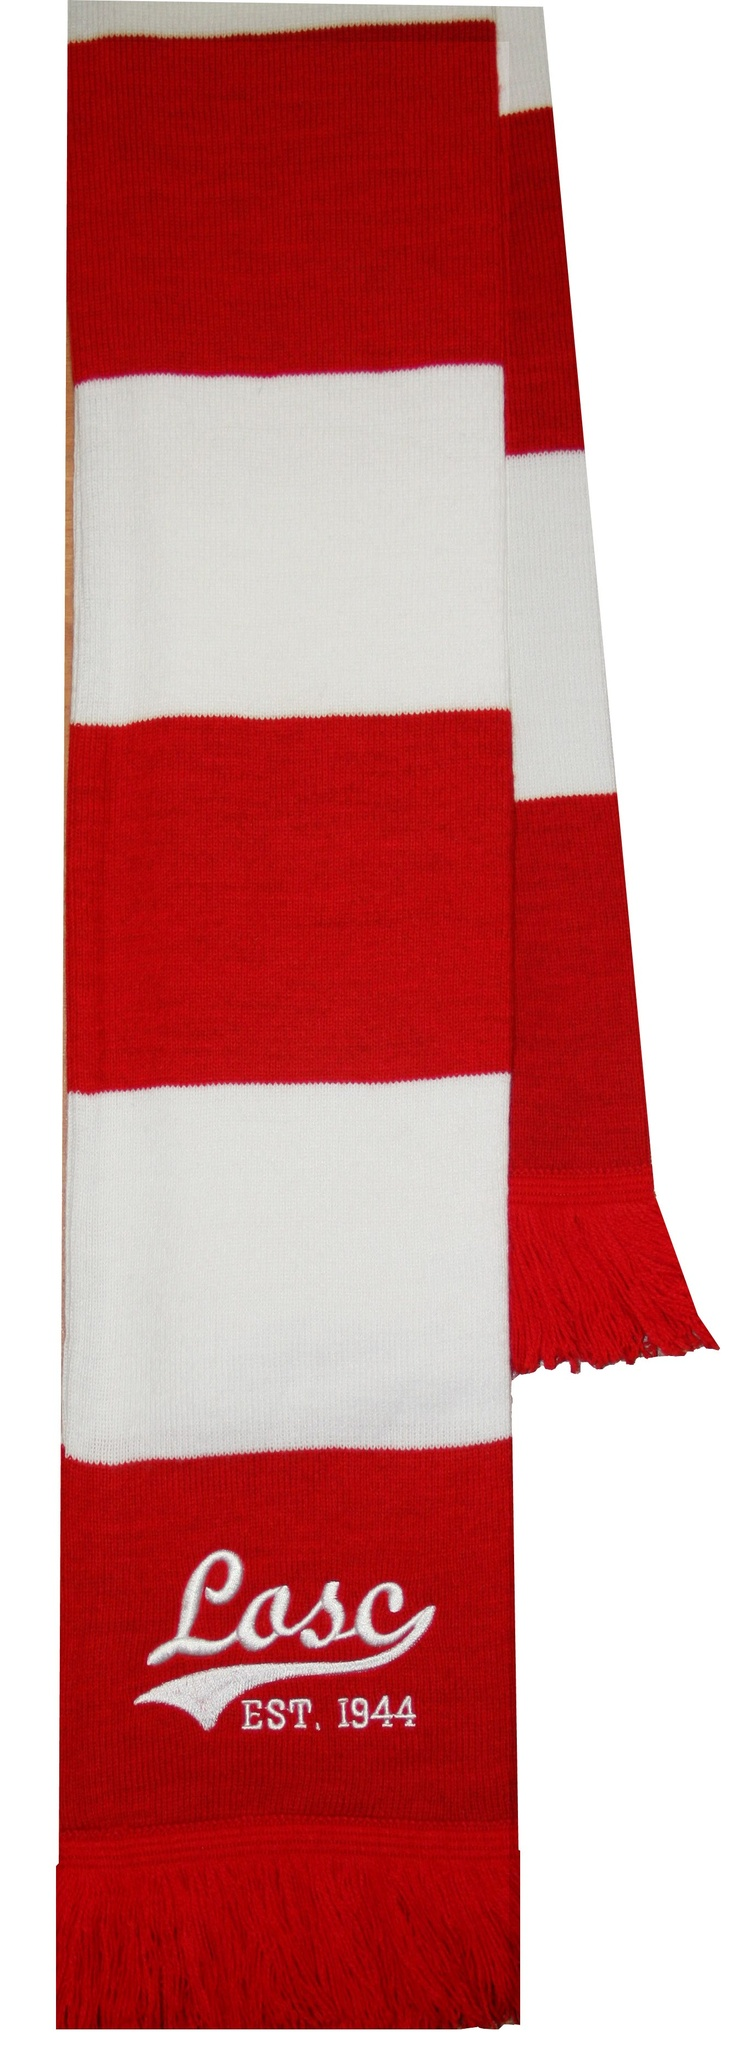 Sampiyon Sport / Acrylic Knitted LOSC embroidered Scarf